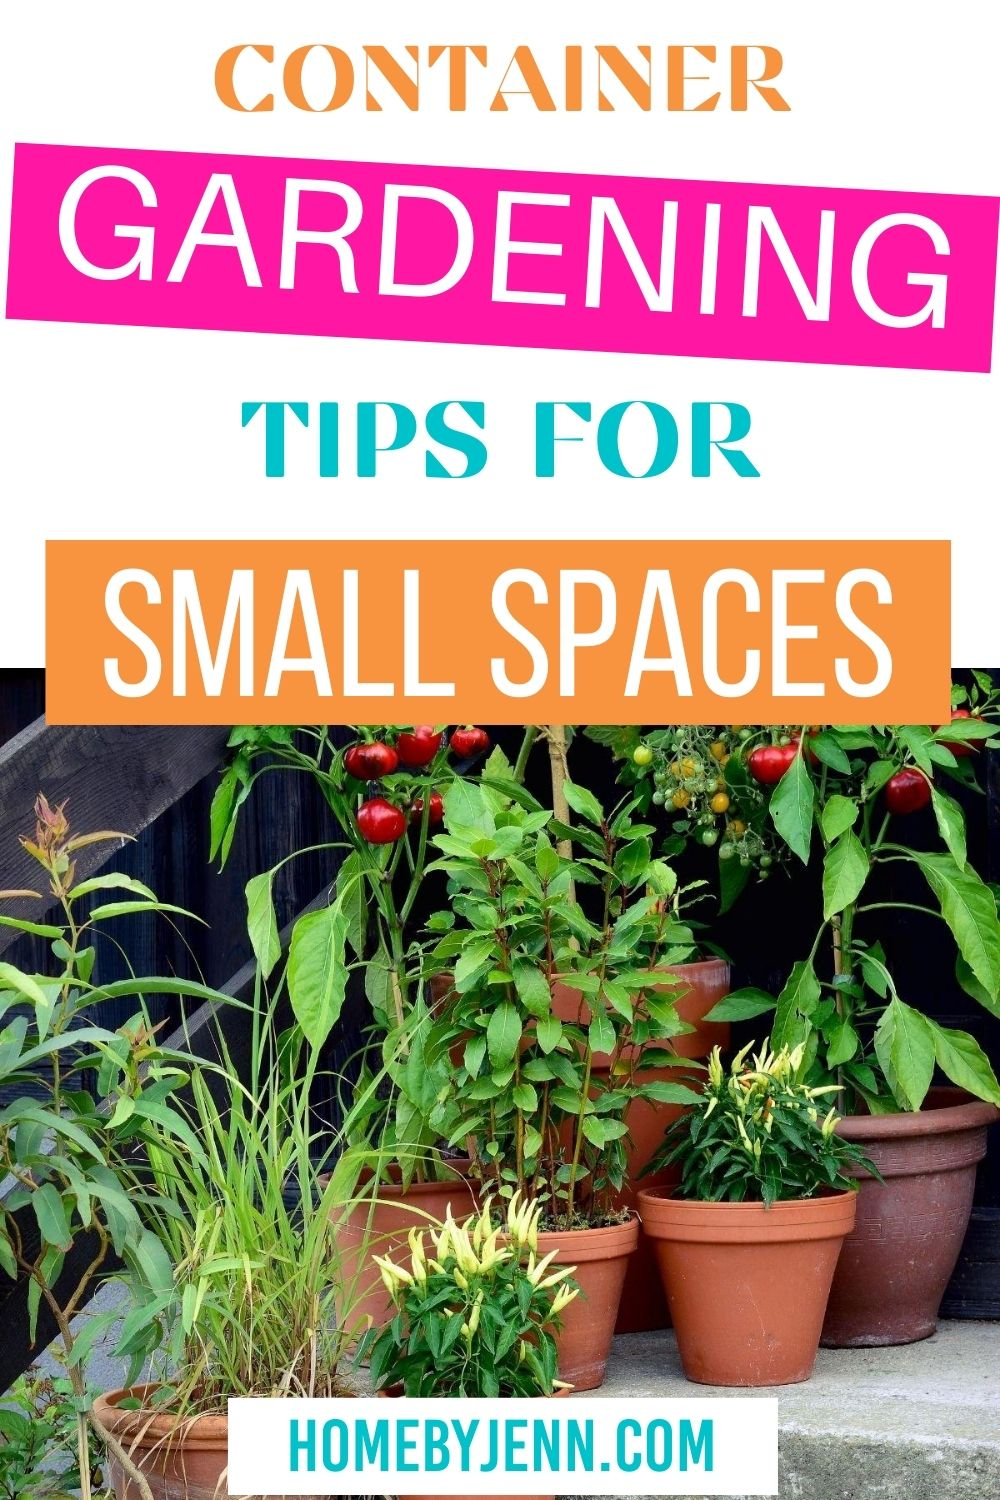 Grow your favorite plants in containers with these container gardening tips. These gardening tips are perfect for those with small spaces. #gardeningtips #gardening #gardentips #containergardening via @homebyjenn